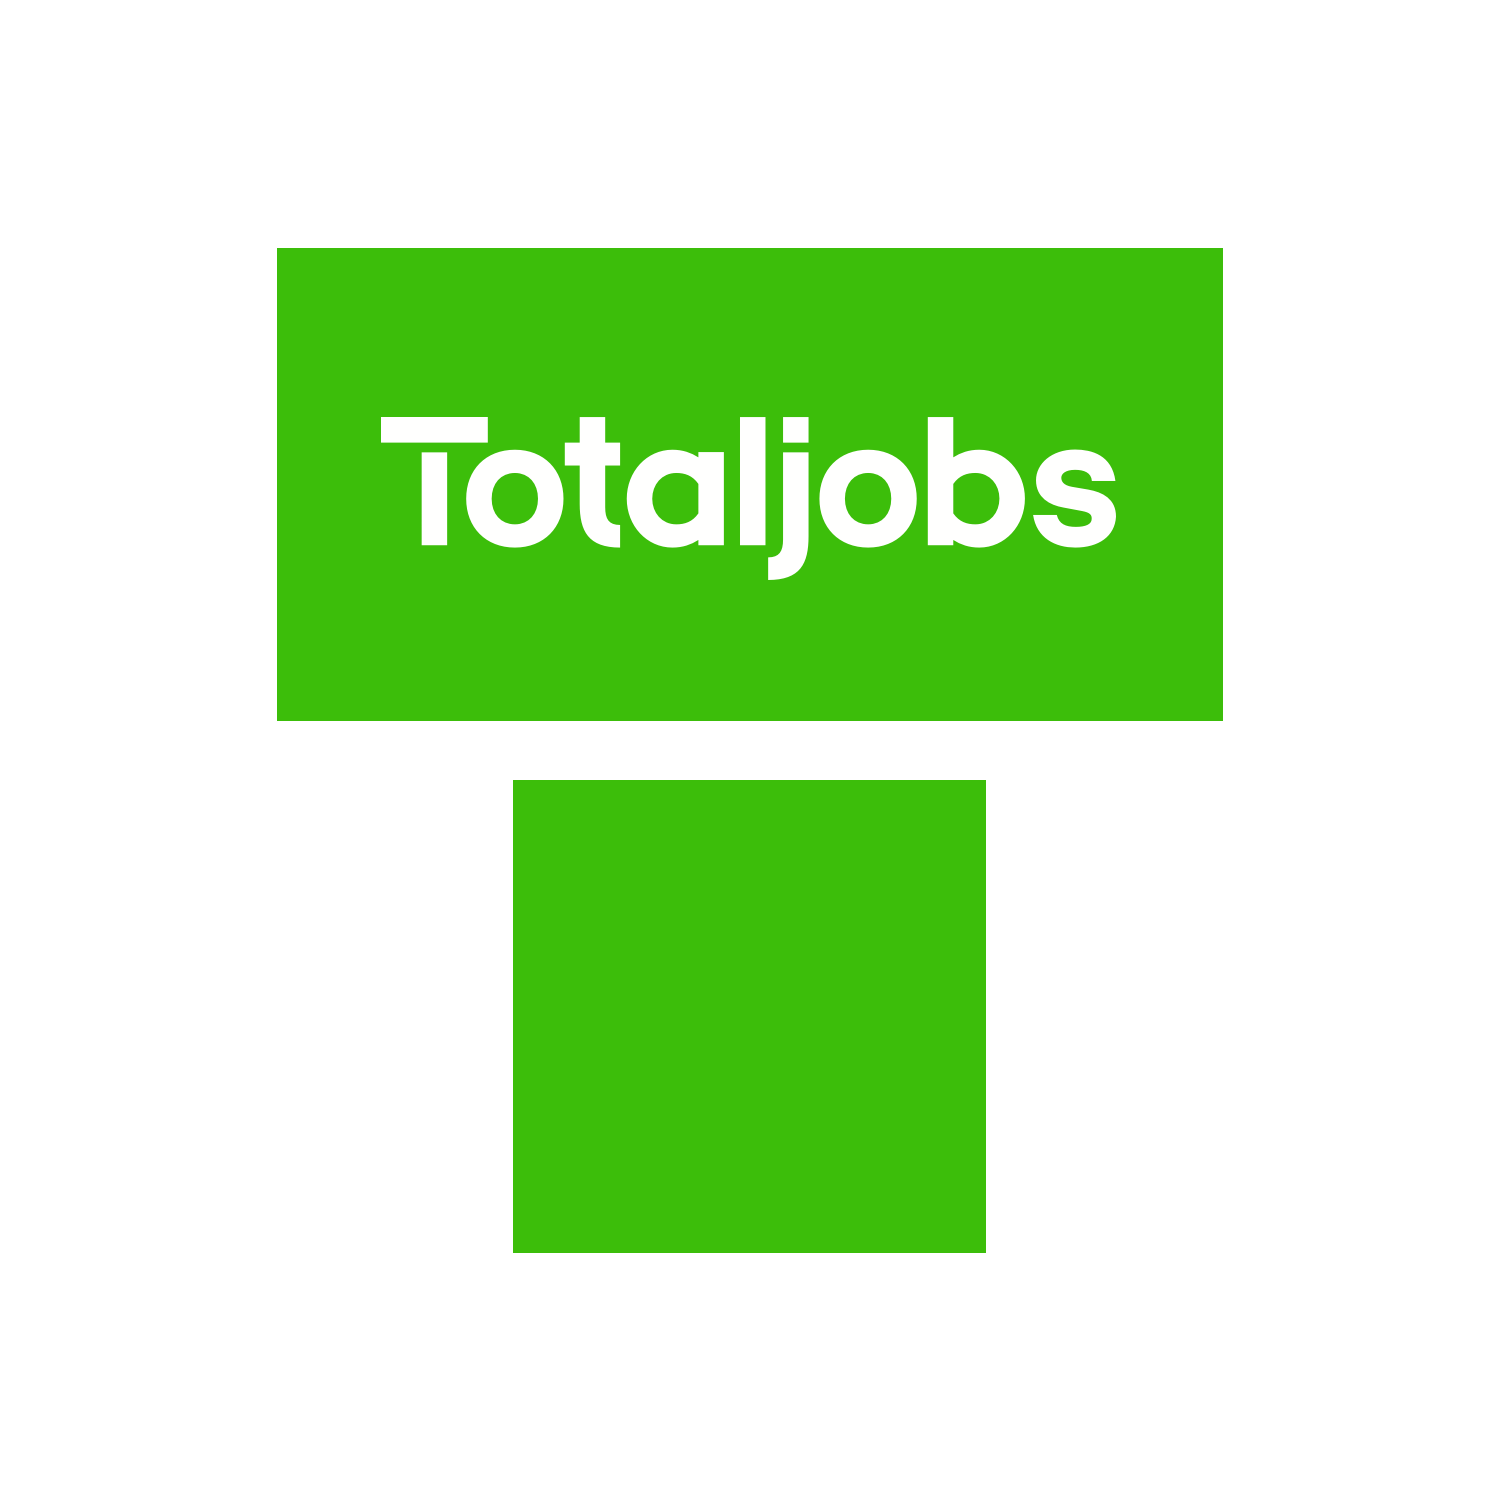 a92647a9ea222 Jobs   UK Job Search   Find your perfect job - totaljobs